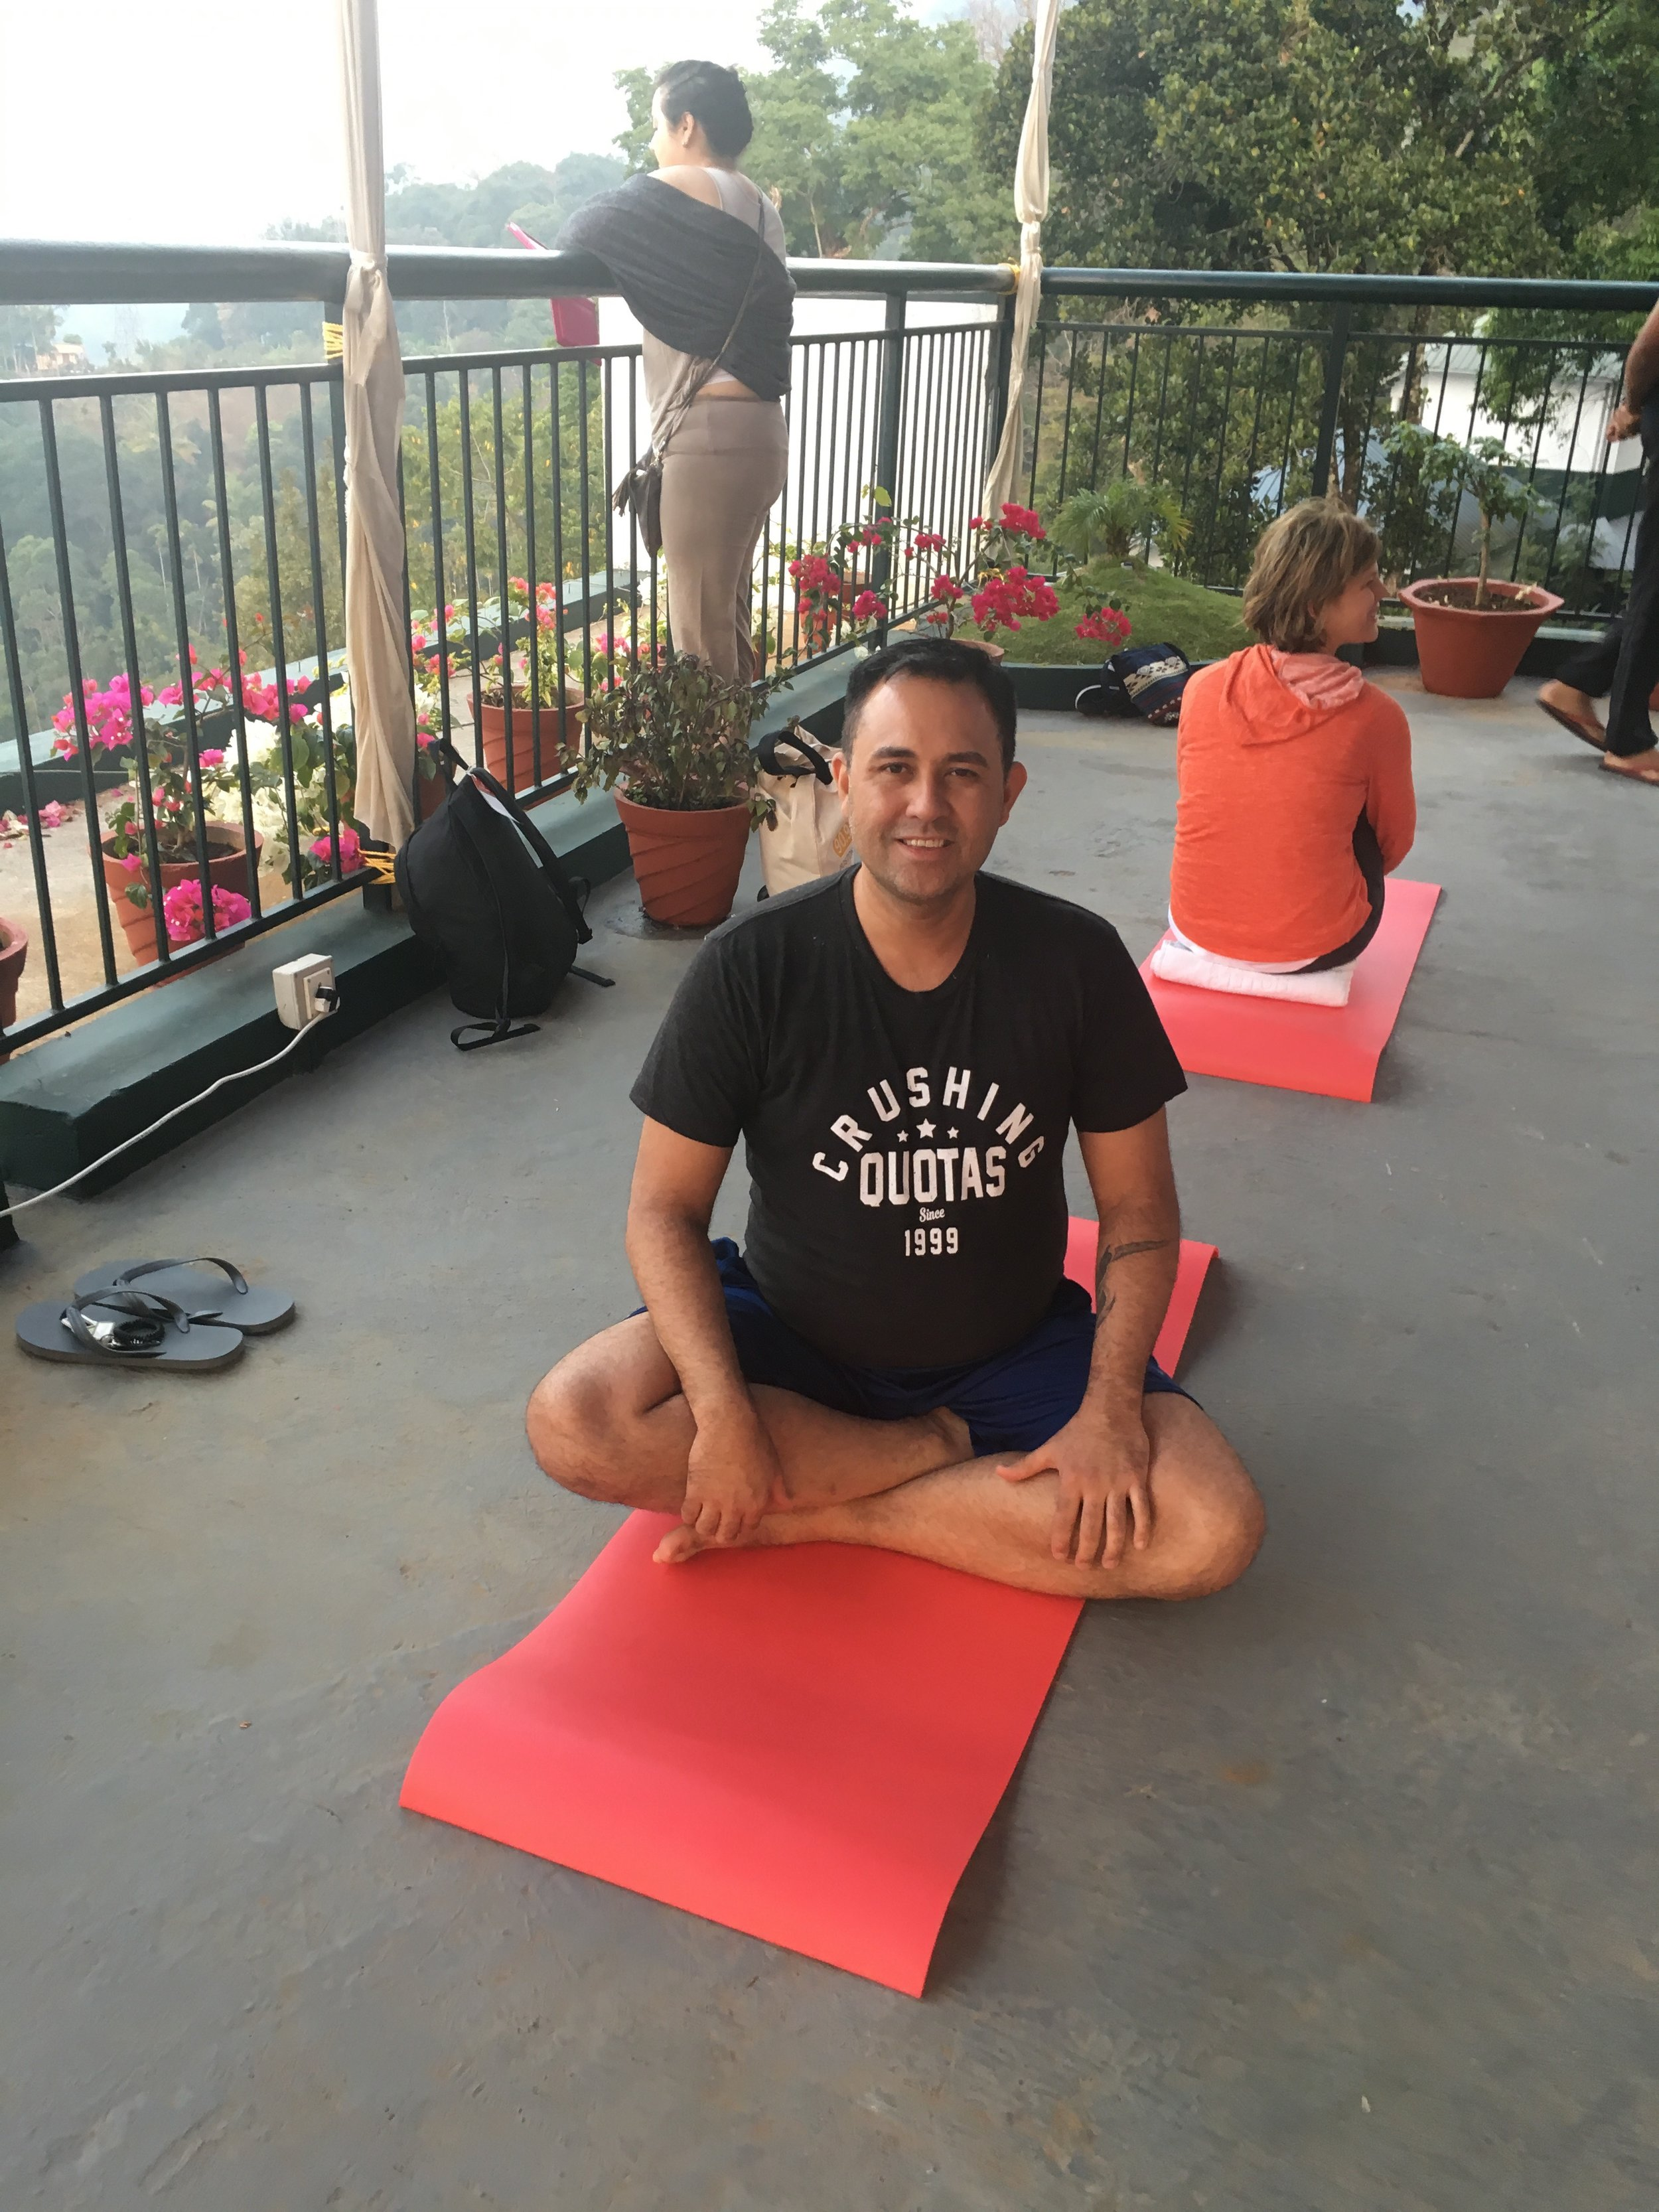 Me at morning Yoga. Yoga is about mind and body. We posed very slowly, held poses for extended times, and then evaluated to make sure that our breath and heart rate did not change. This is how you receive maximum benefit from yoga. Sun Salutations.